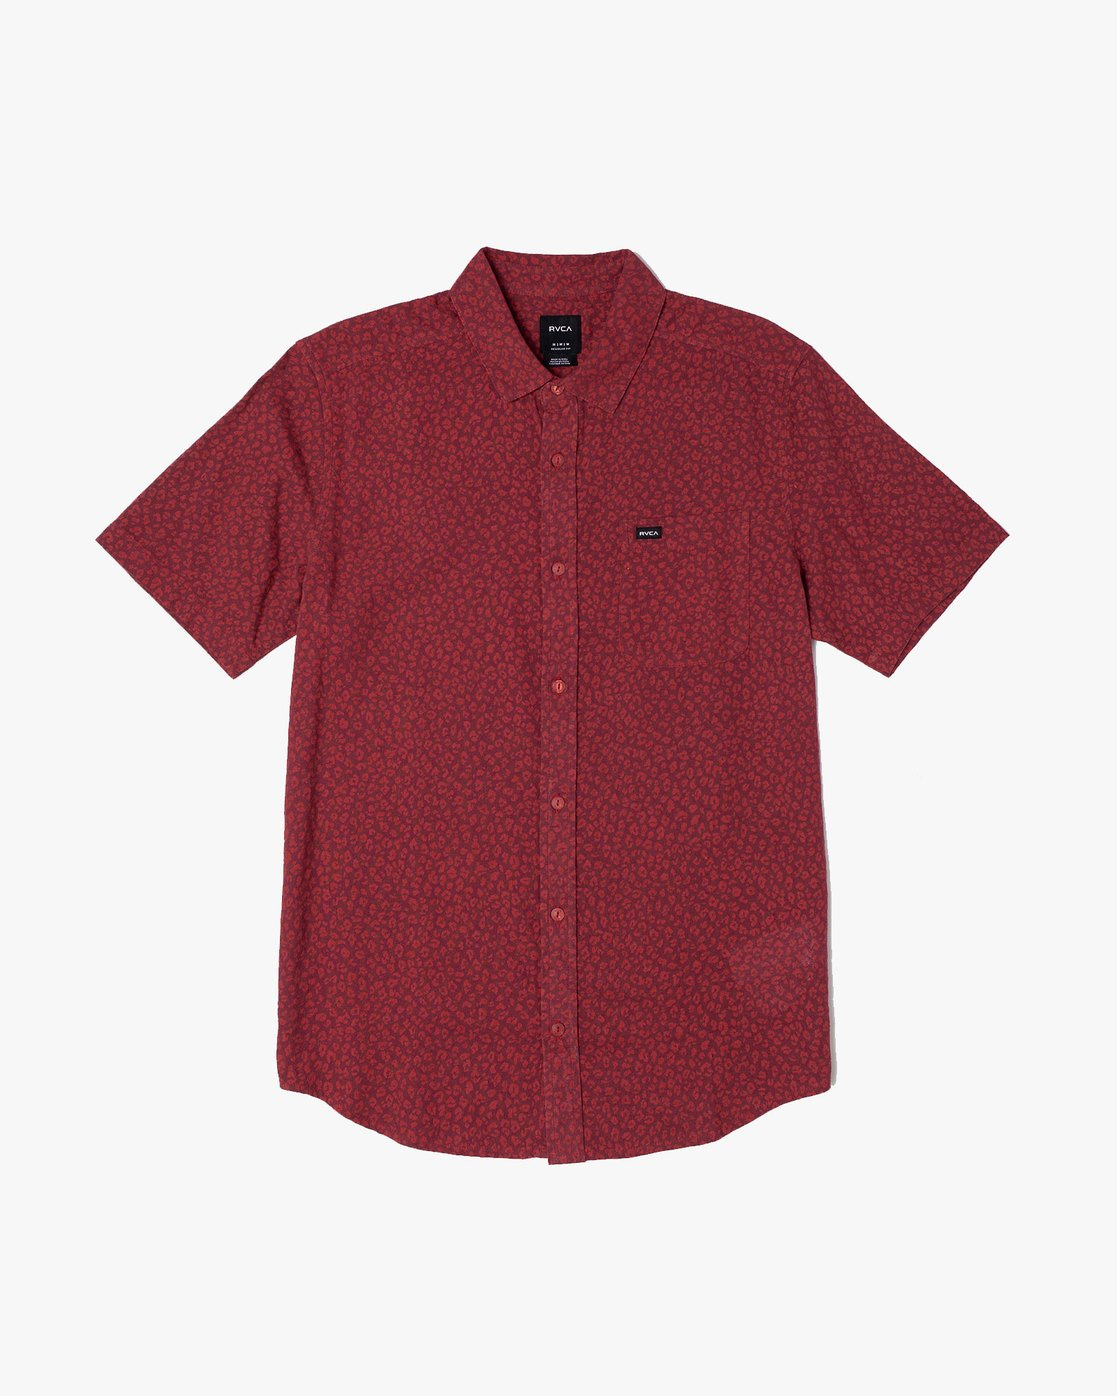 0 PRESIDIO BUTTON-UP SHIRT Red M5091RPR RVCA